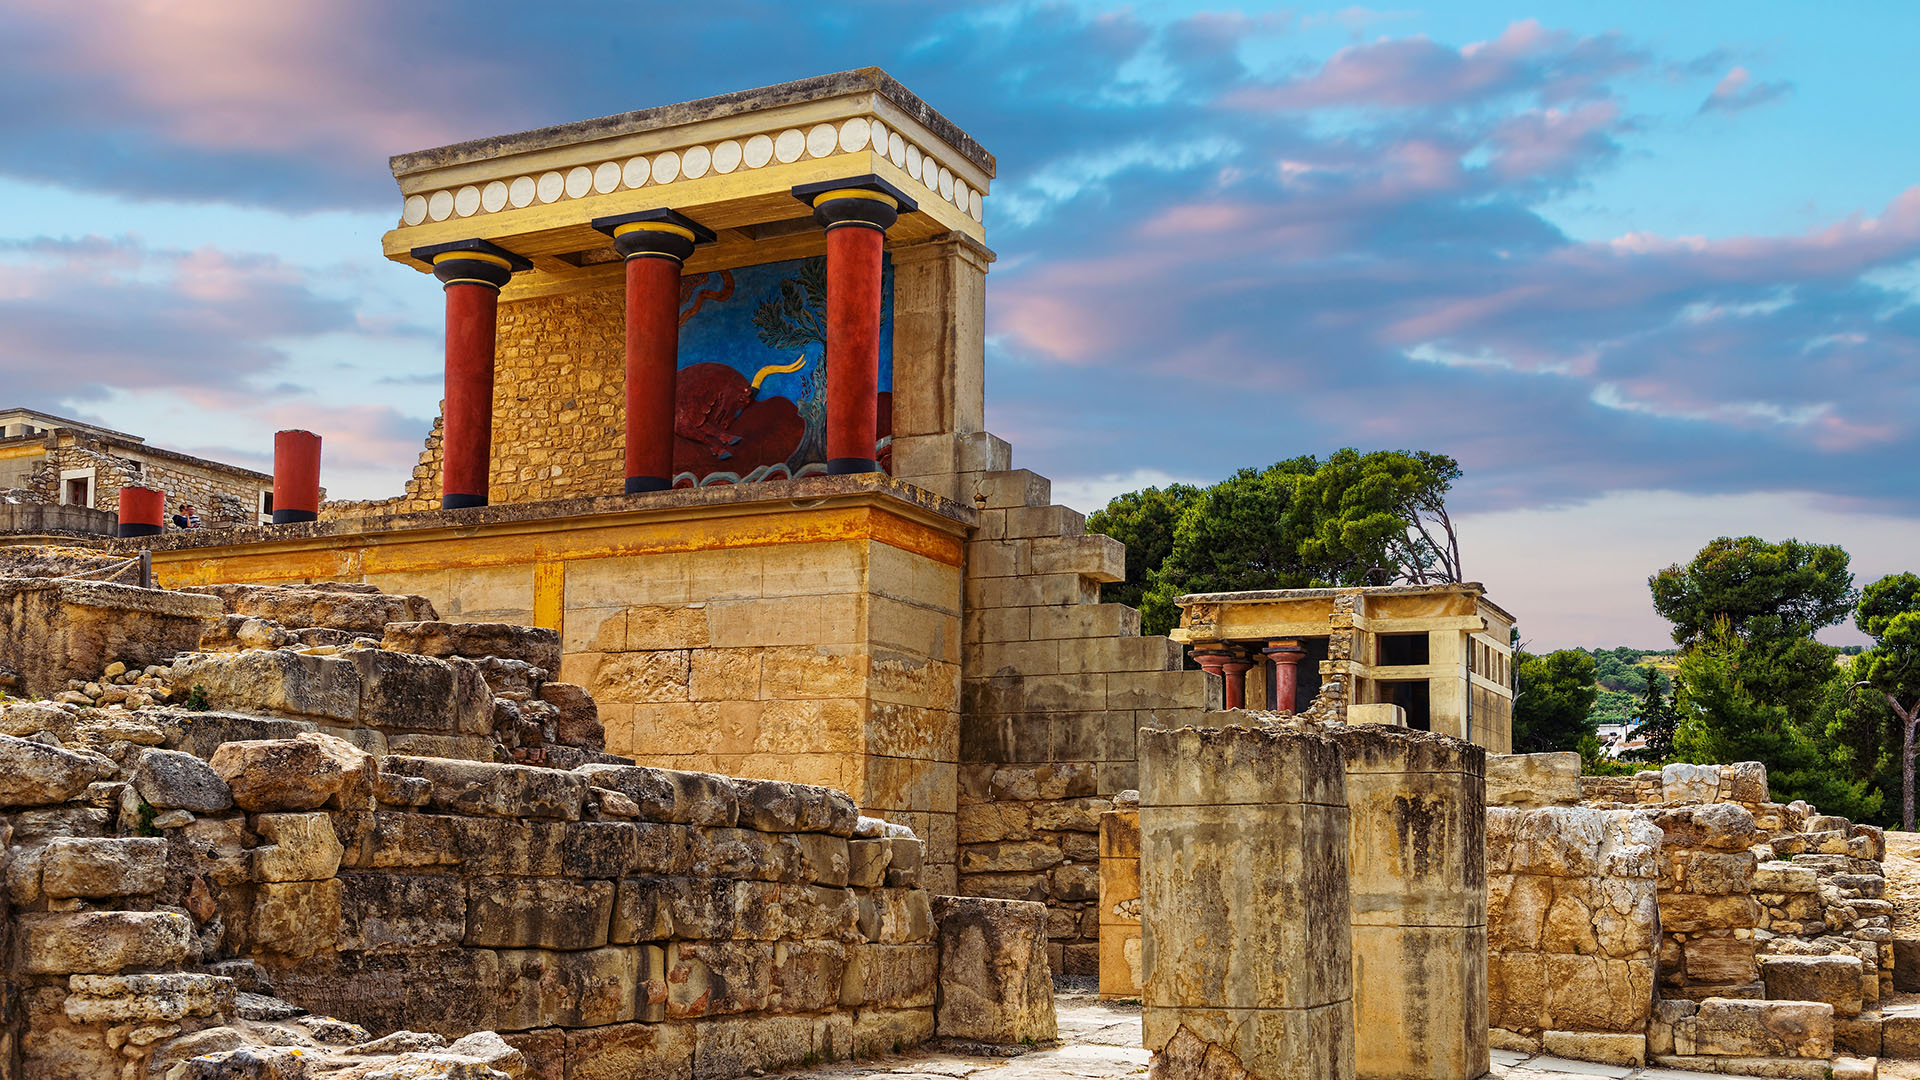 Discover the Palace of Knossos